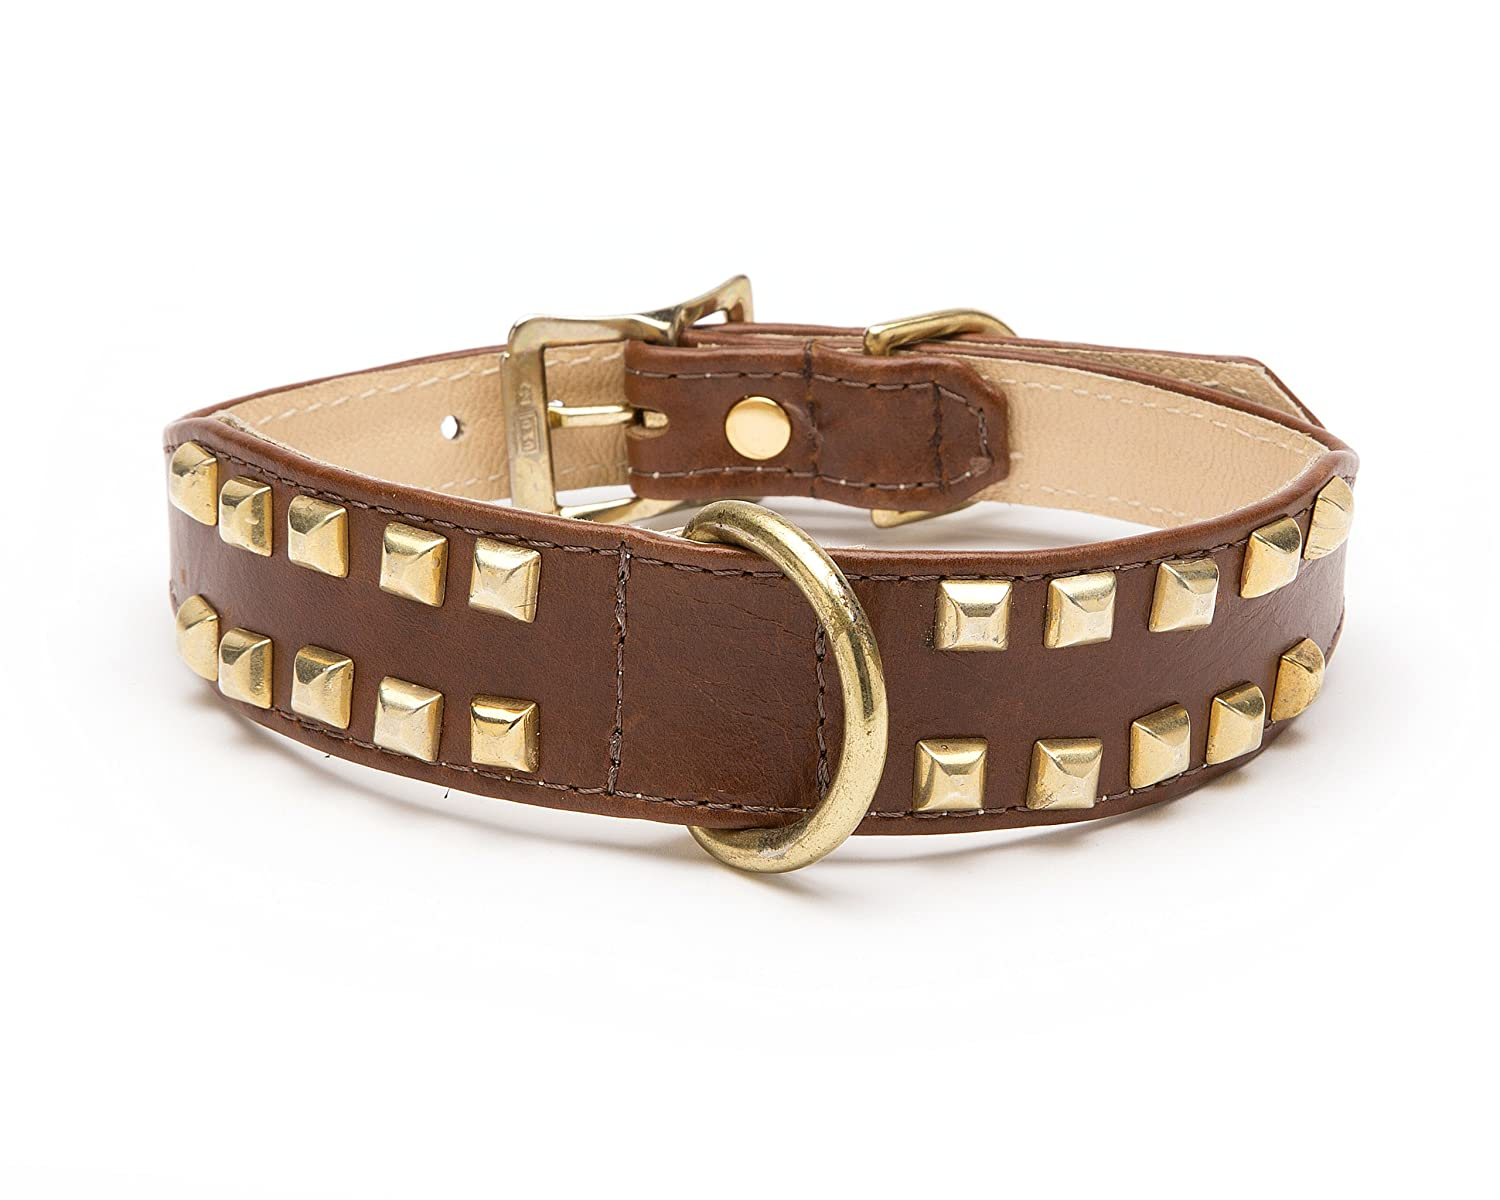 Double Row Pyramid Tapered Dog Collar, Medium Size 11-14, Brown with Brass Pyramids